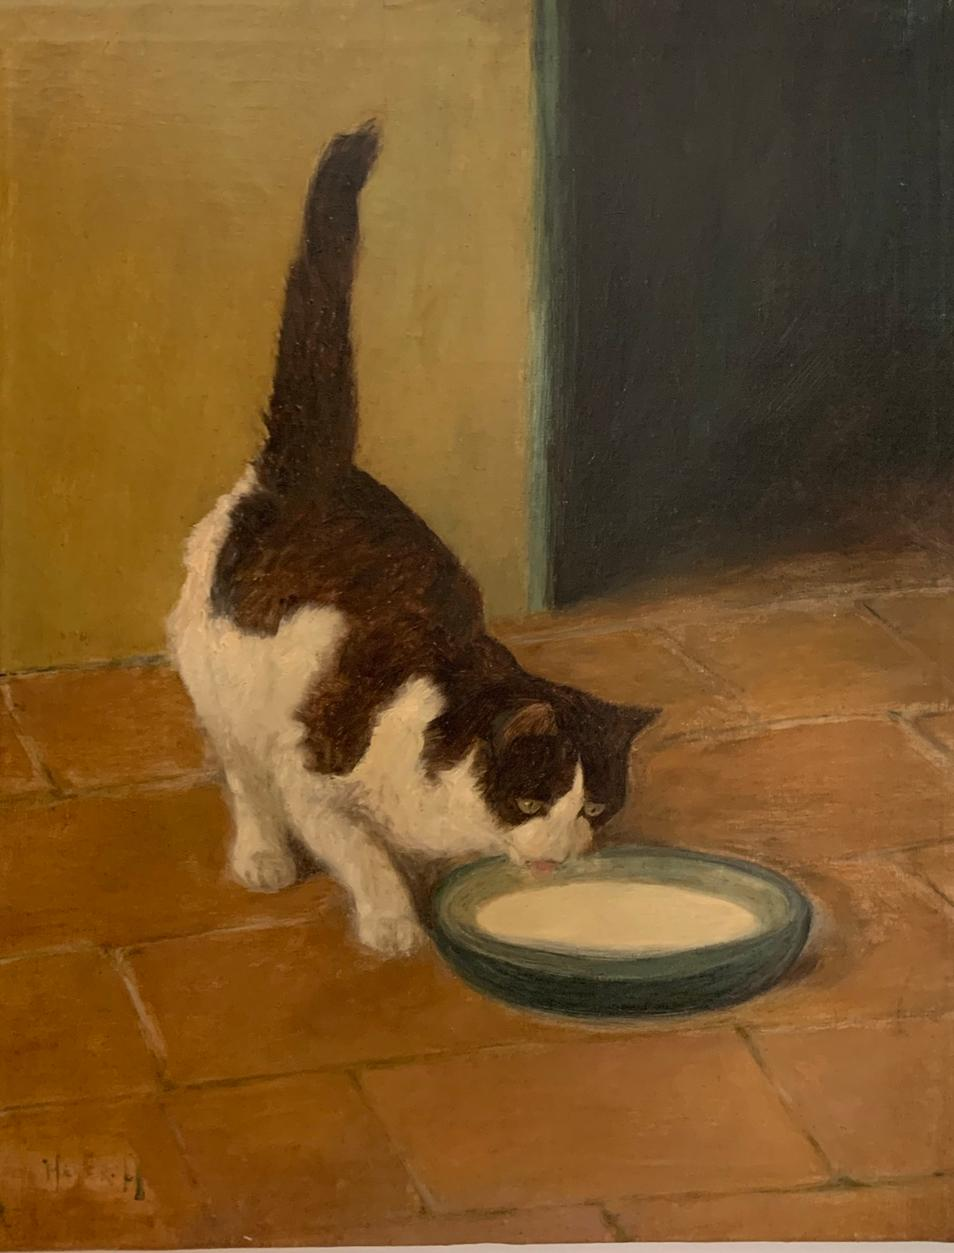 Brown and White Cat Drinking Milk From a Bowl